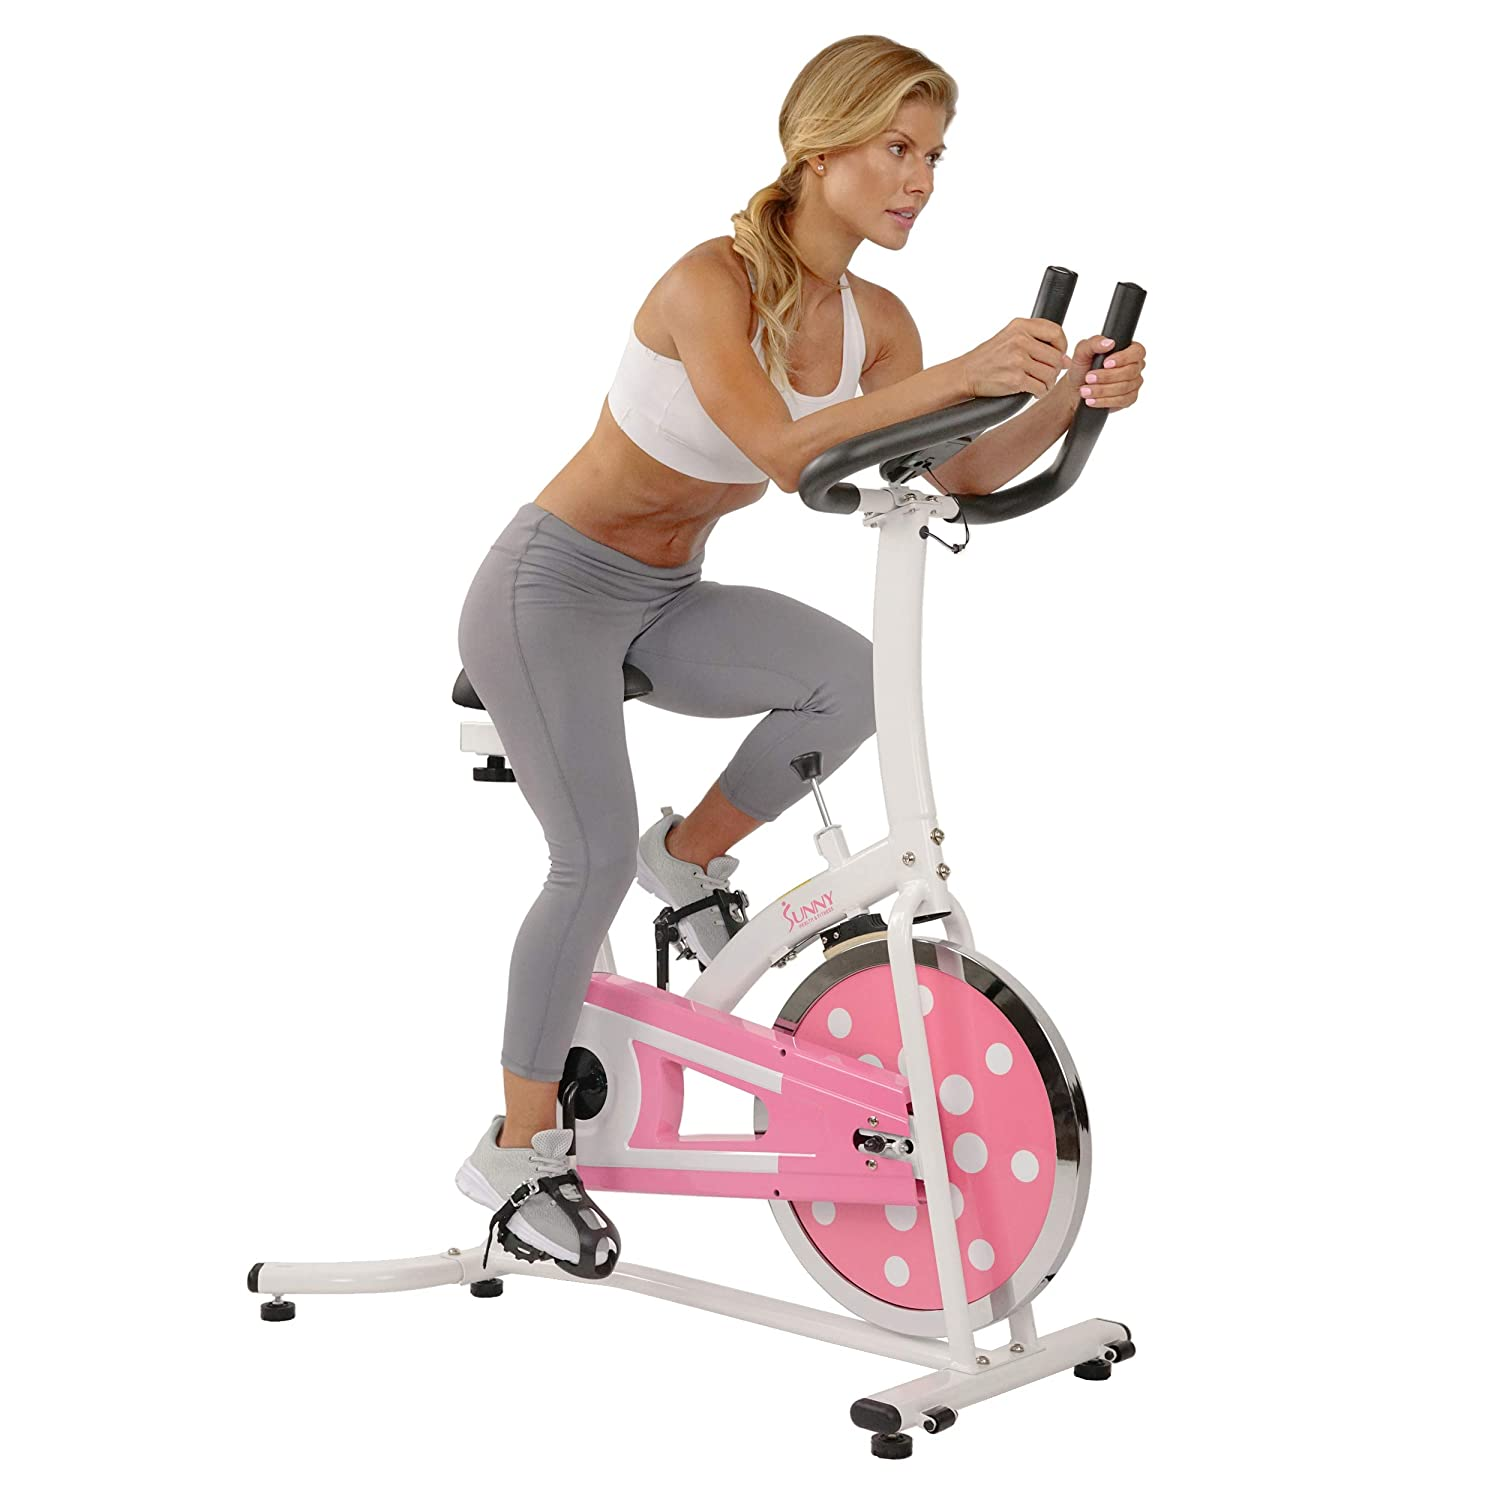 Sunny Health Fitness Indoor Cycling Exercise Stationary Bike with Monitor and Flywheel Bike, Pink – P8100